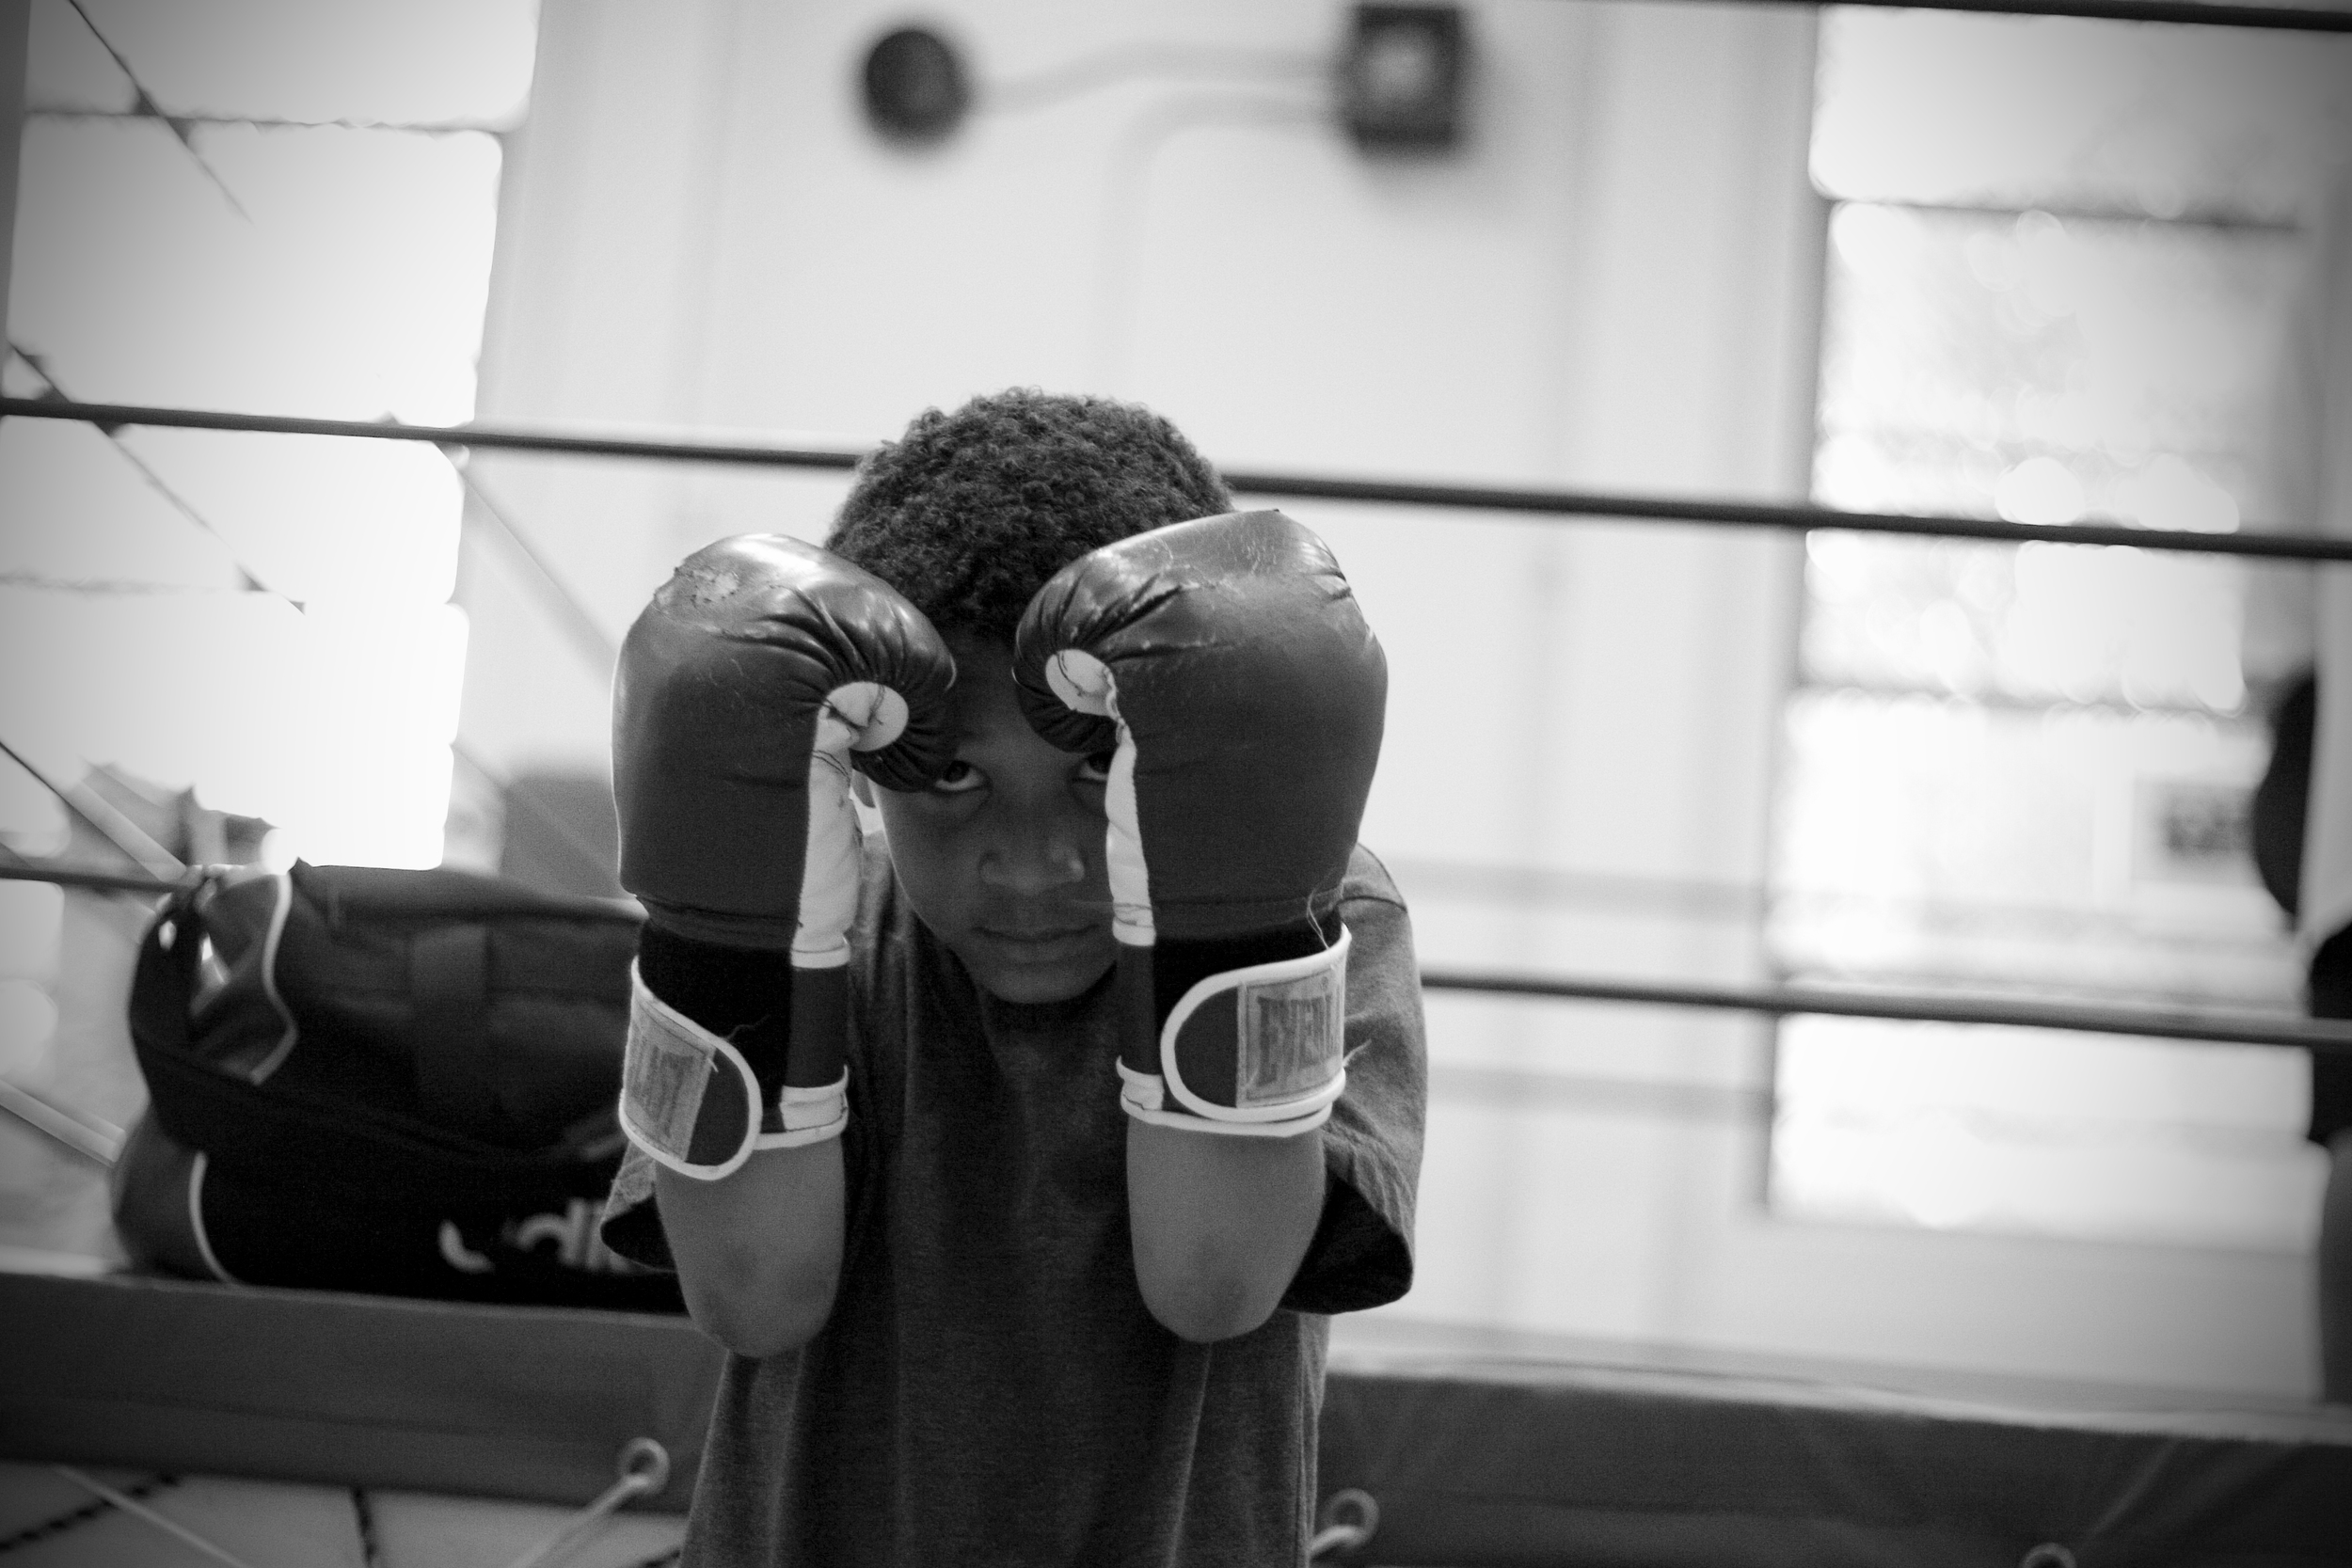 ​Zion Evans, 7, squares off with a punching bag in northeast Portland. Boxers may begin training young, but can't fight until they turn 8. For Zion, that is still five months away.